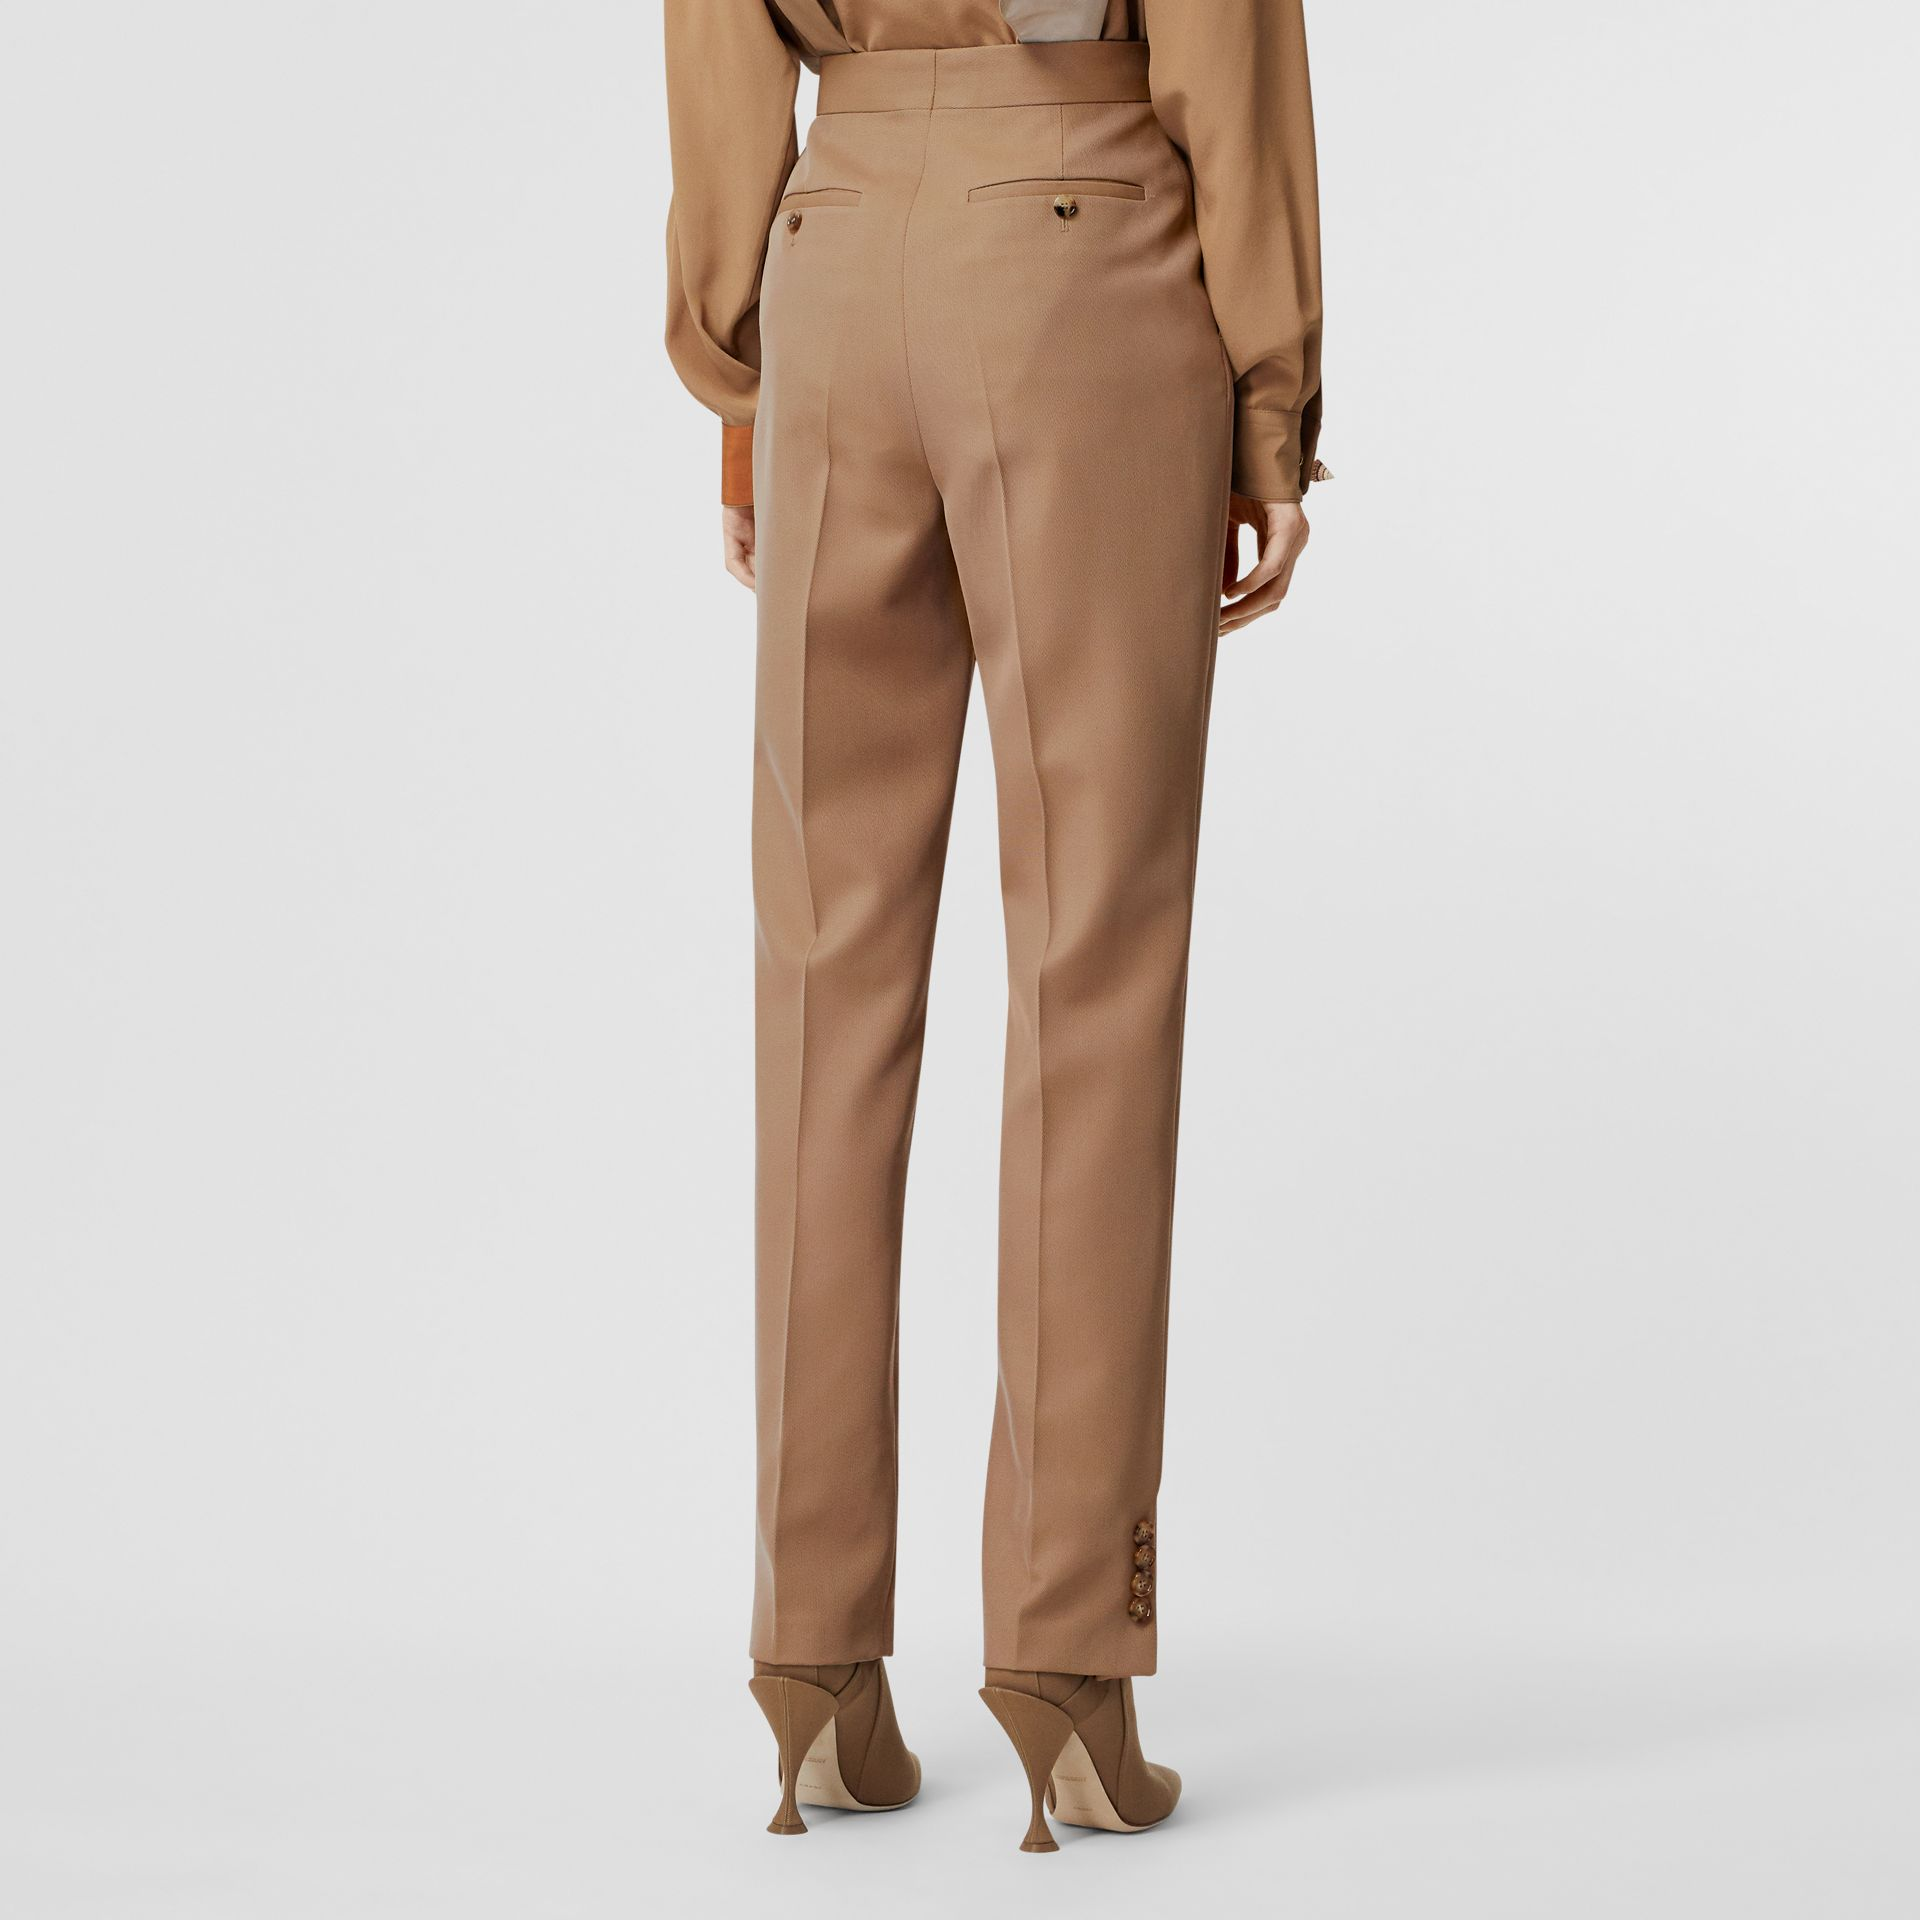 Straight Fit Button Detail Wool Blend Tailored Trousers in Camel - Women | Burberry - gallery image 2